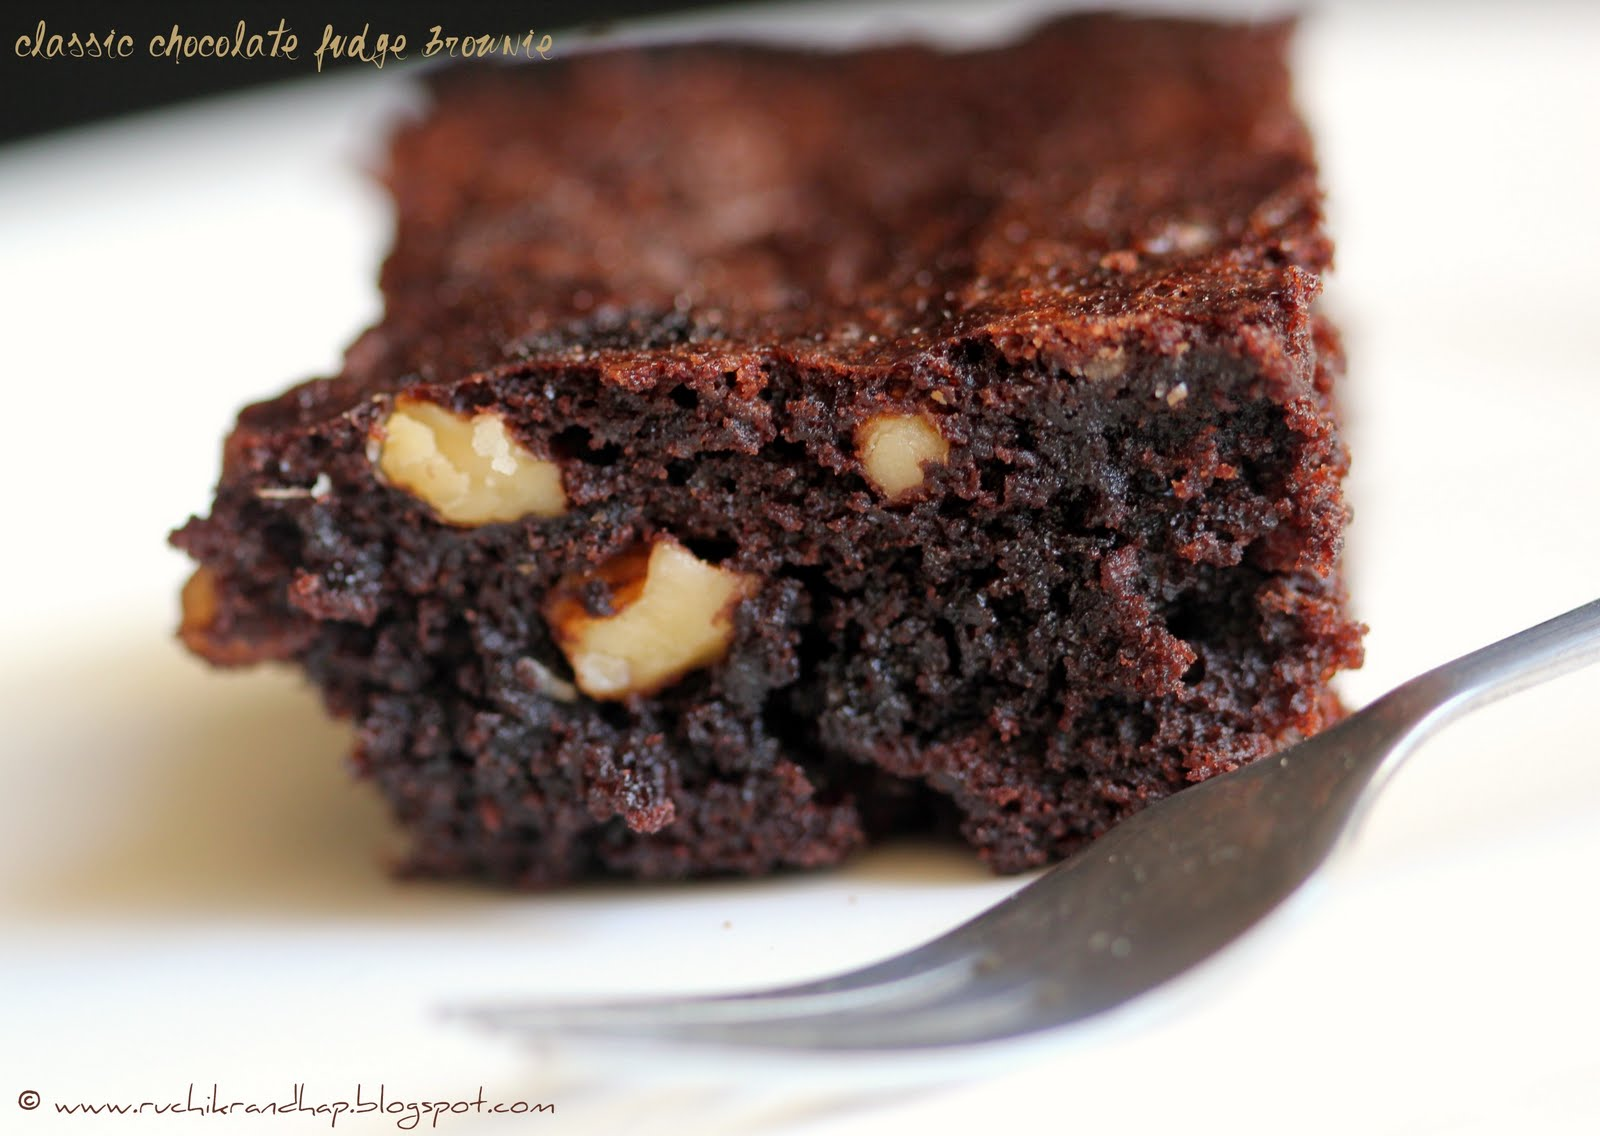 brownie recipe in india